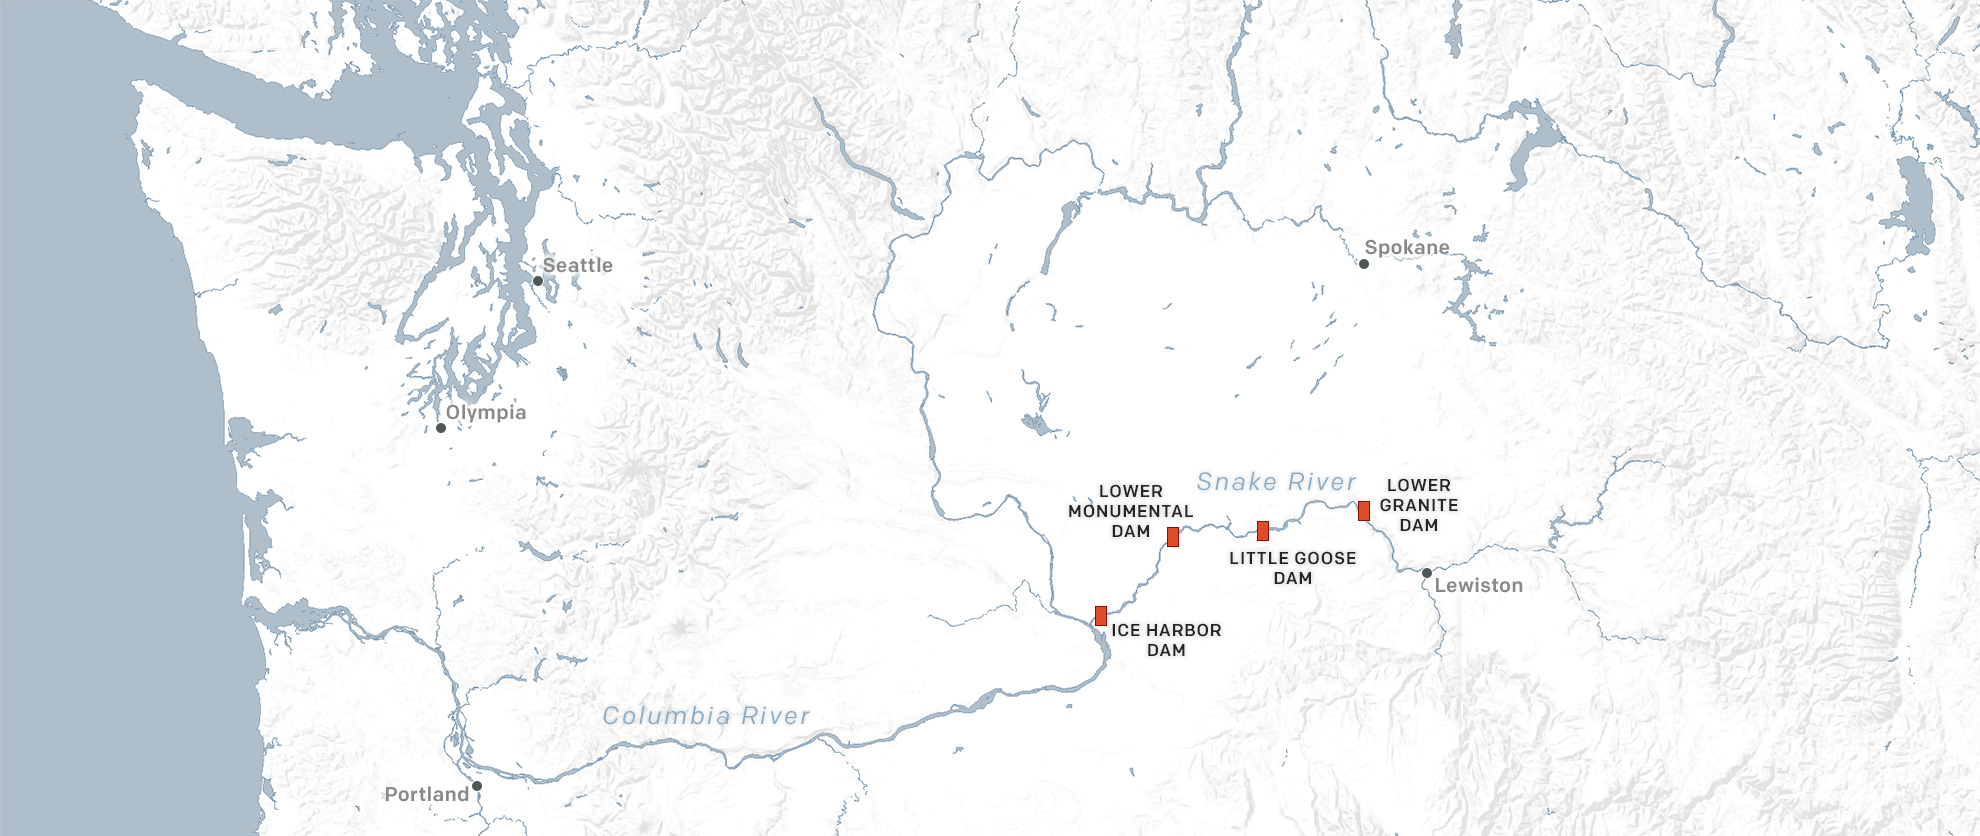 Snake River Washington Map.Why The Removal Of Four Snake River Dams Is A Necessary And Feasible